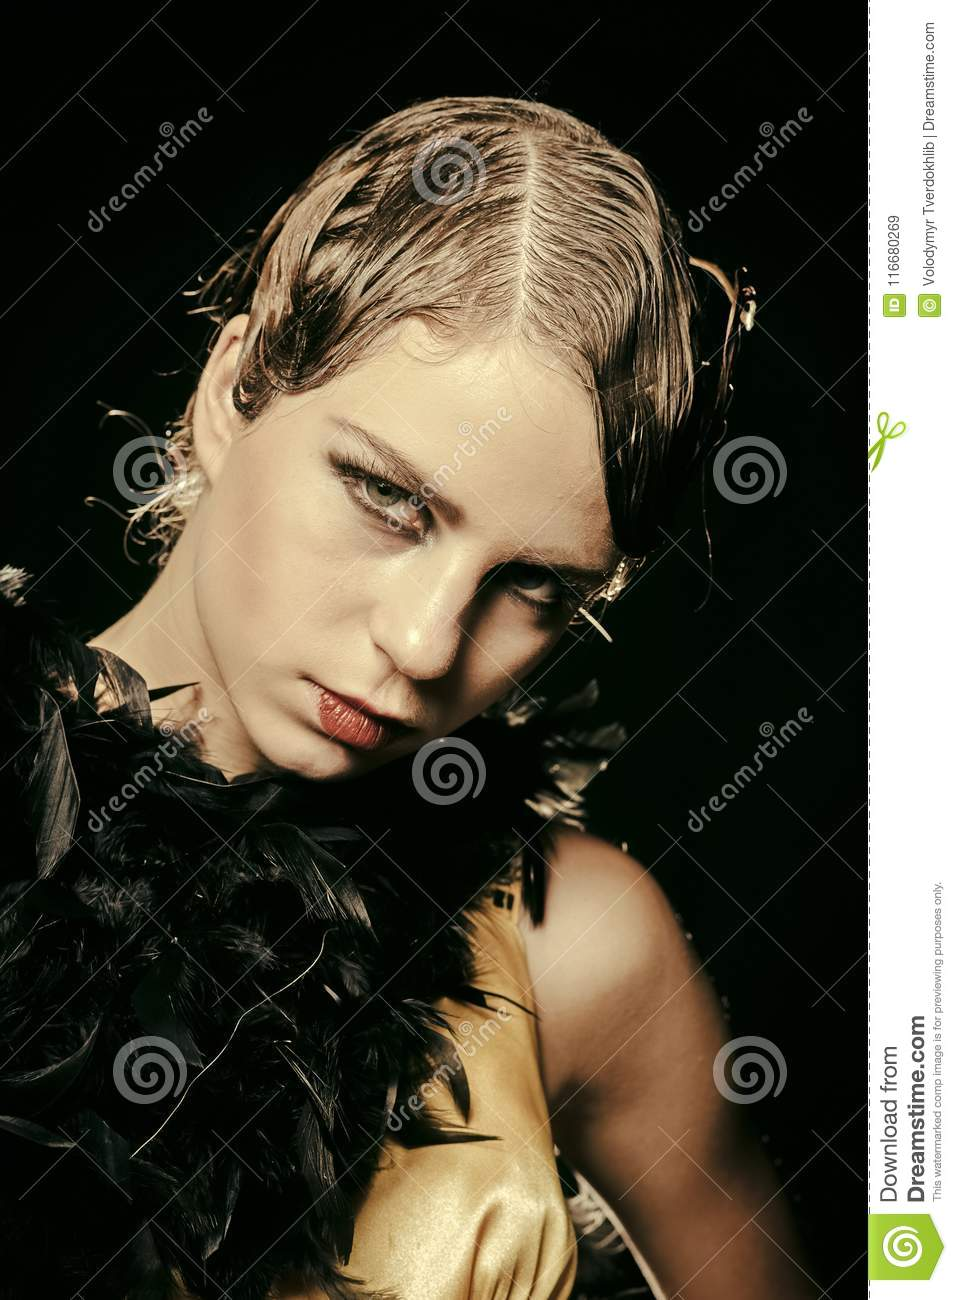 Woman With Stylish Retro Hair And Makeup Stock Image Image Of